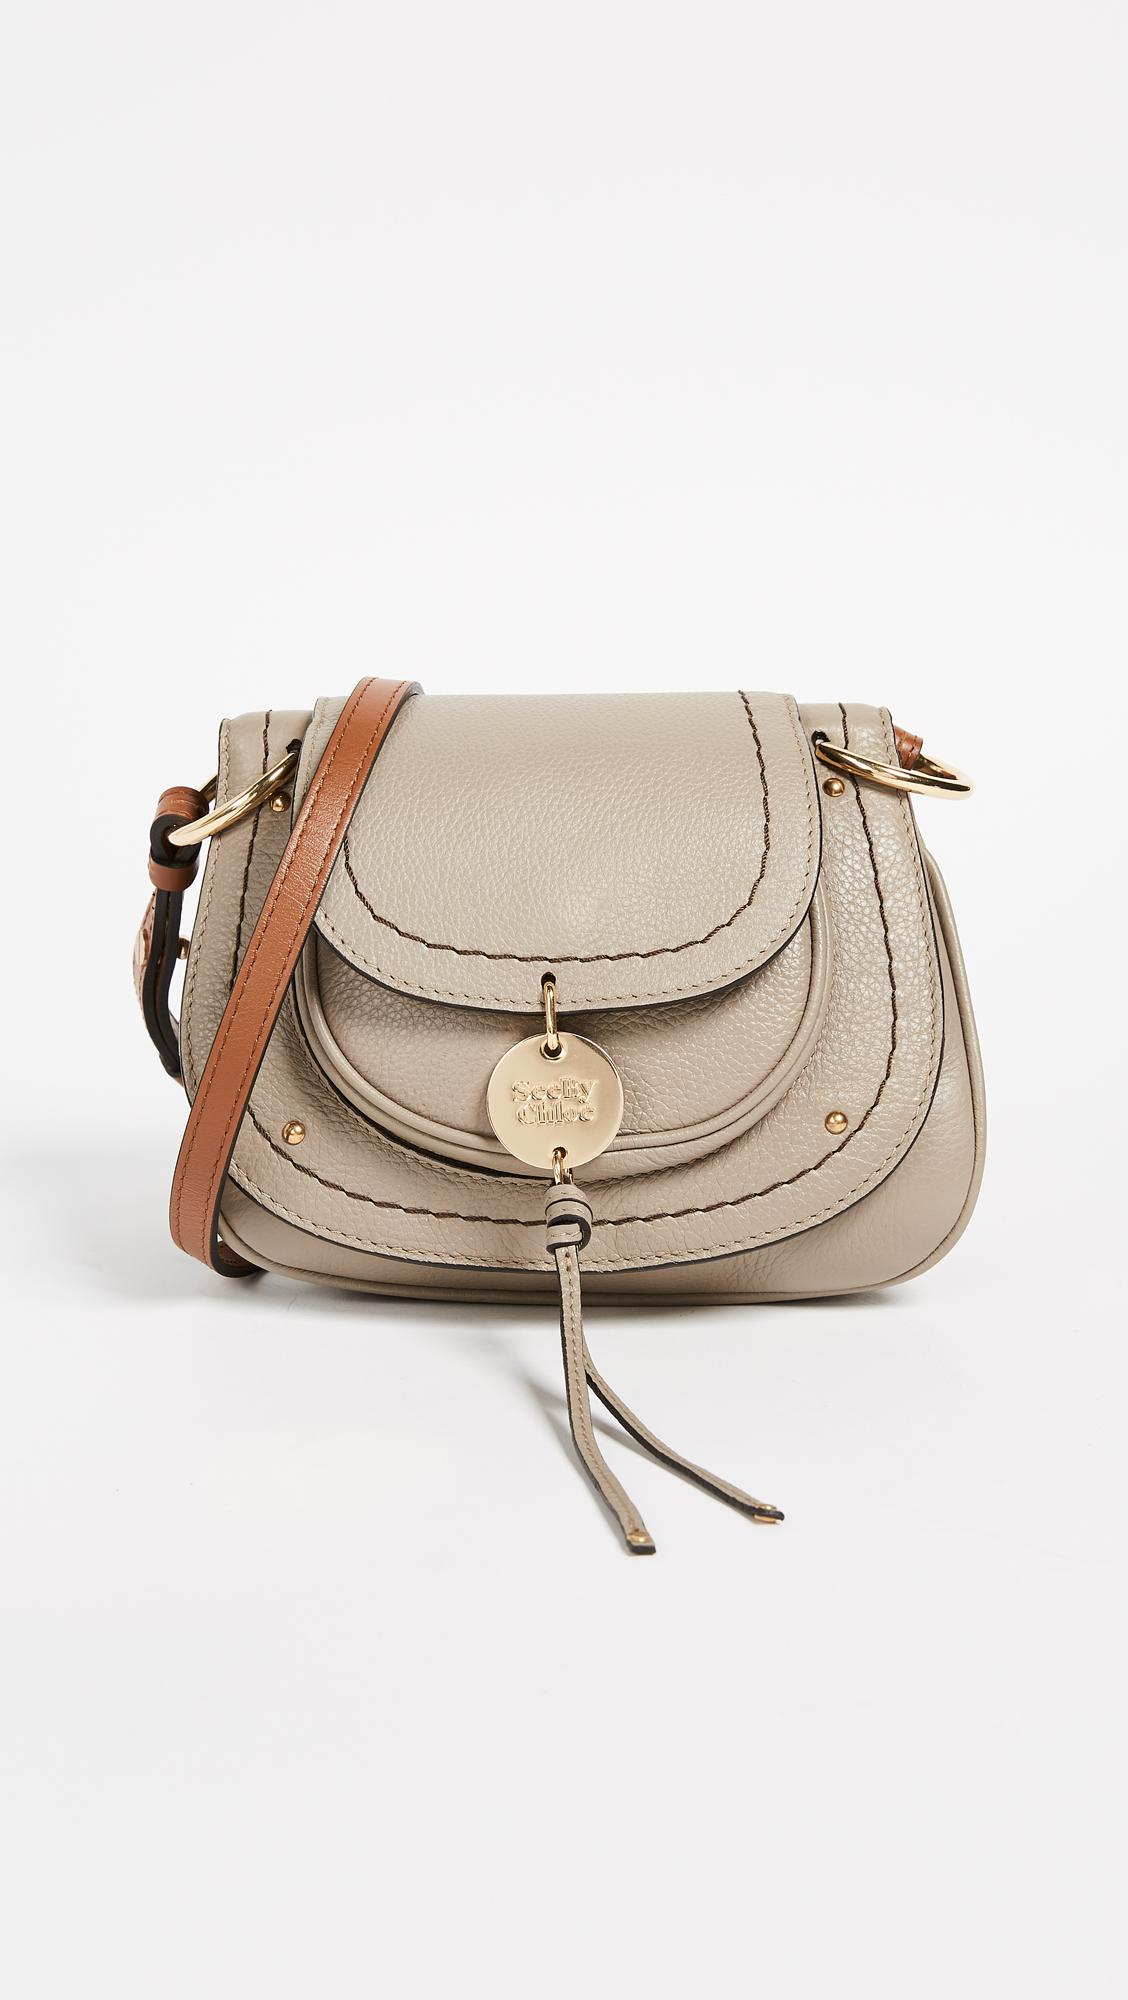 1f3746ac7d3a Lyst - See By Chloé Susie Small Saddle Bag in Gray